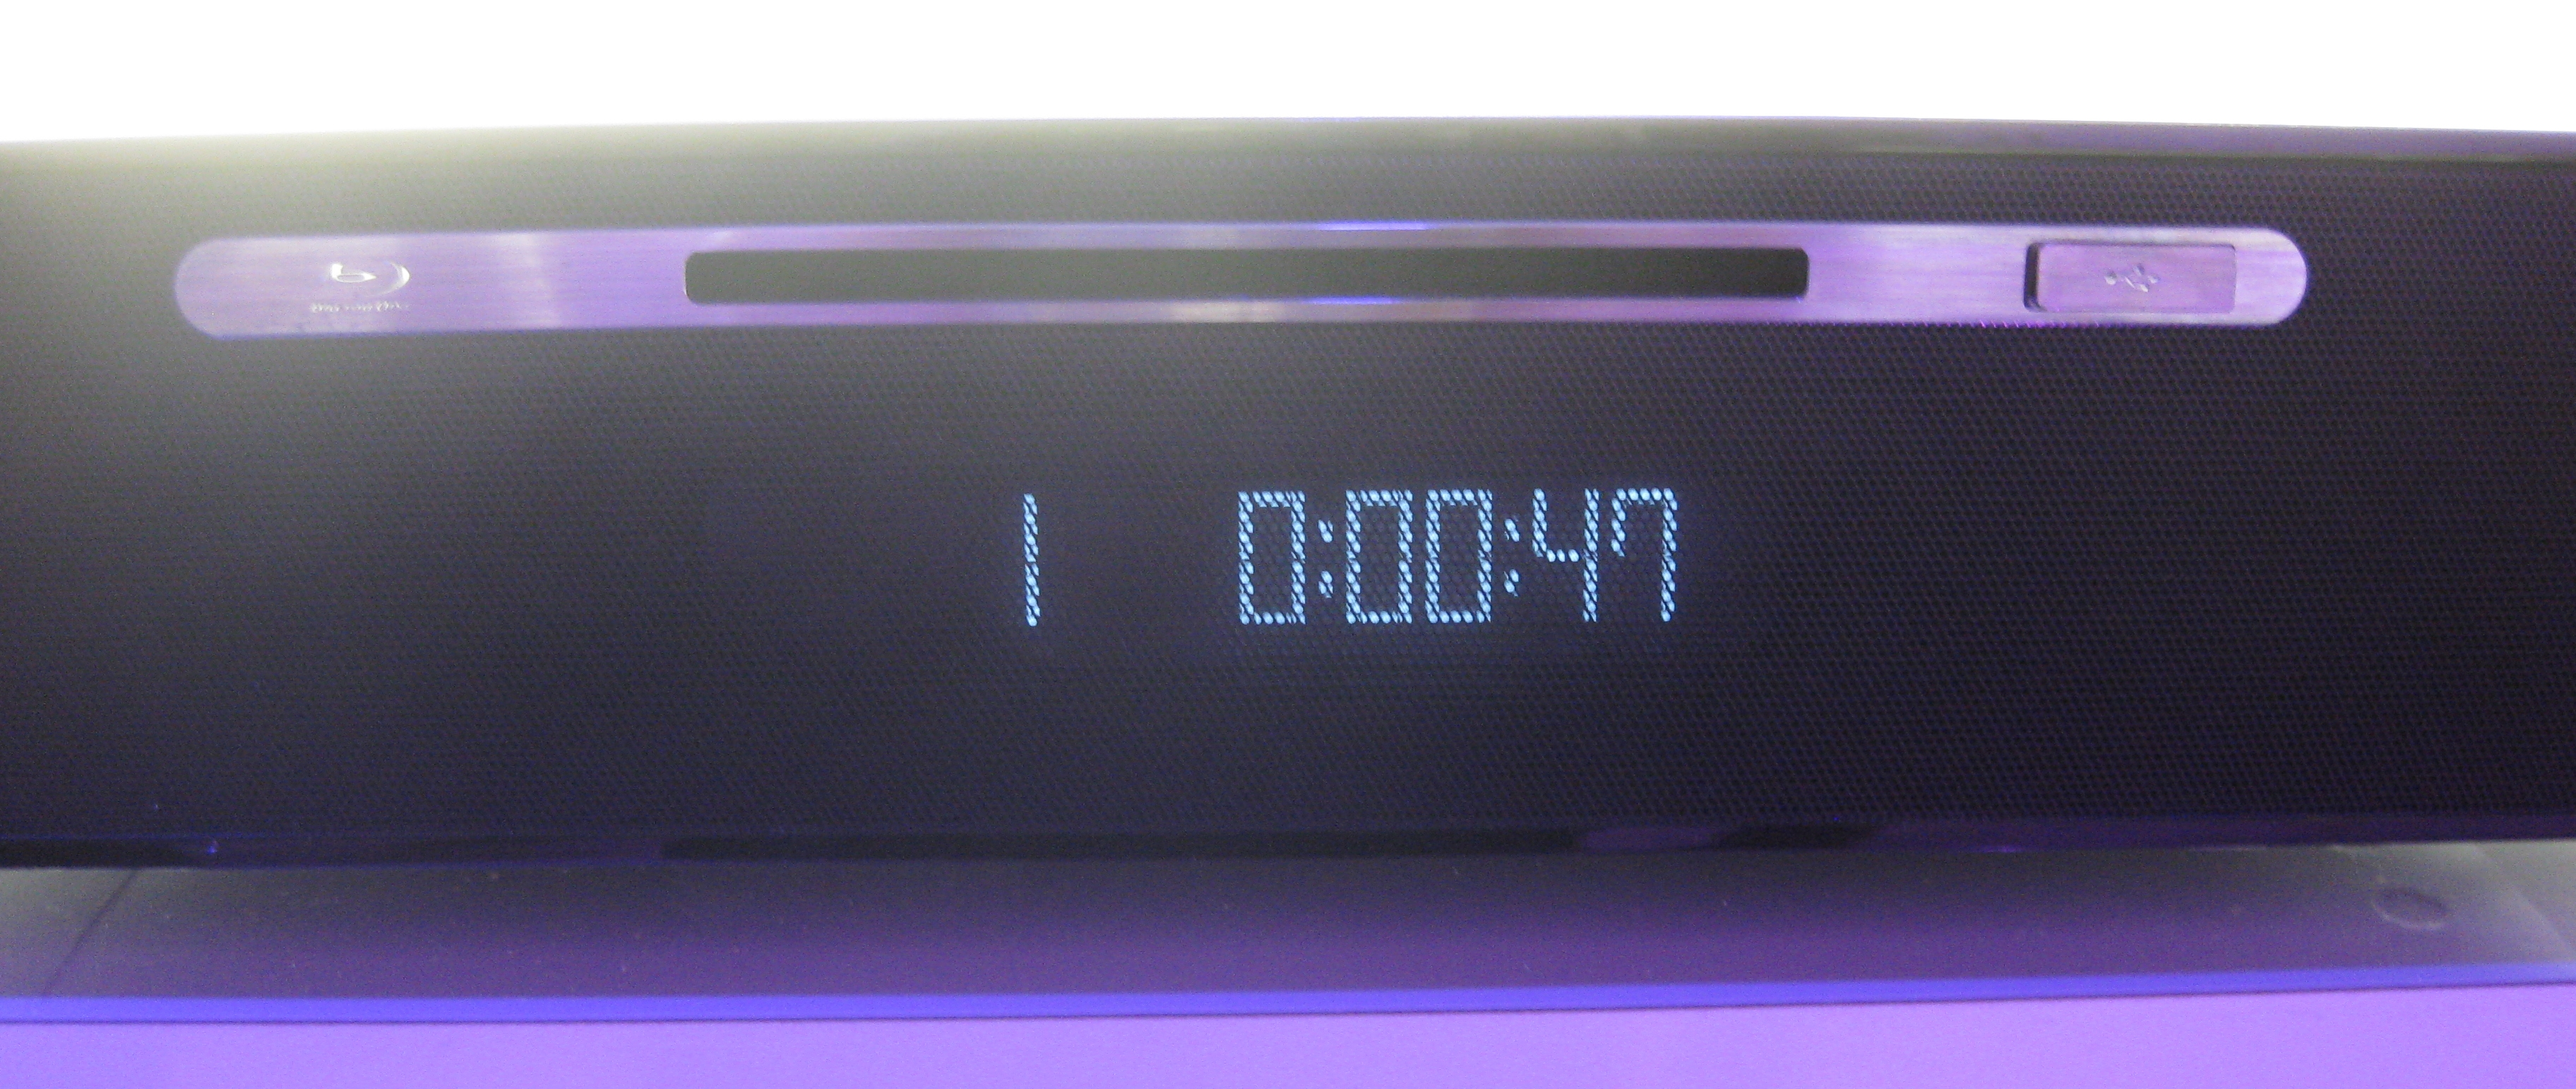 The LLB915's slot-loading built-in Blu-ray player.